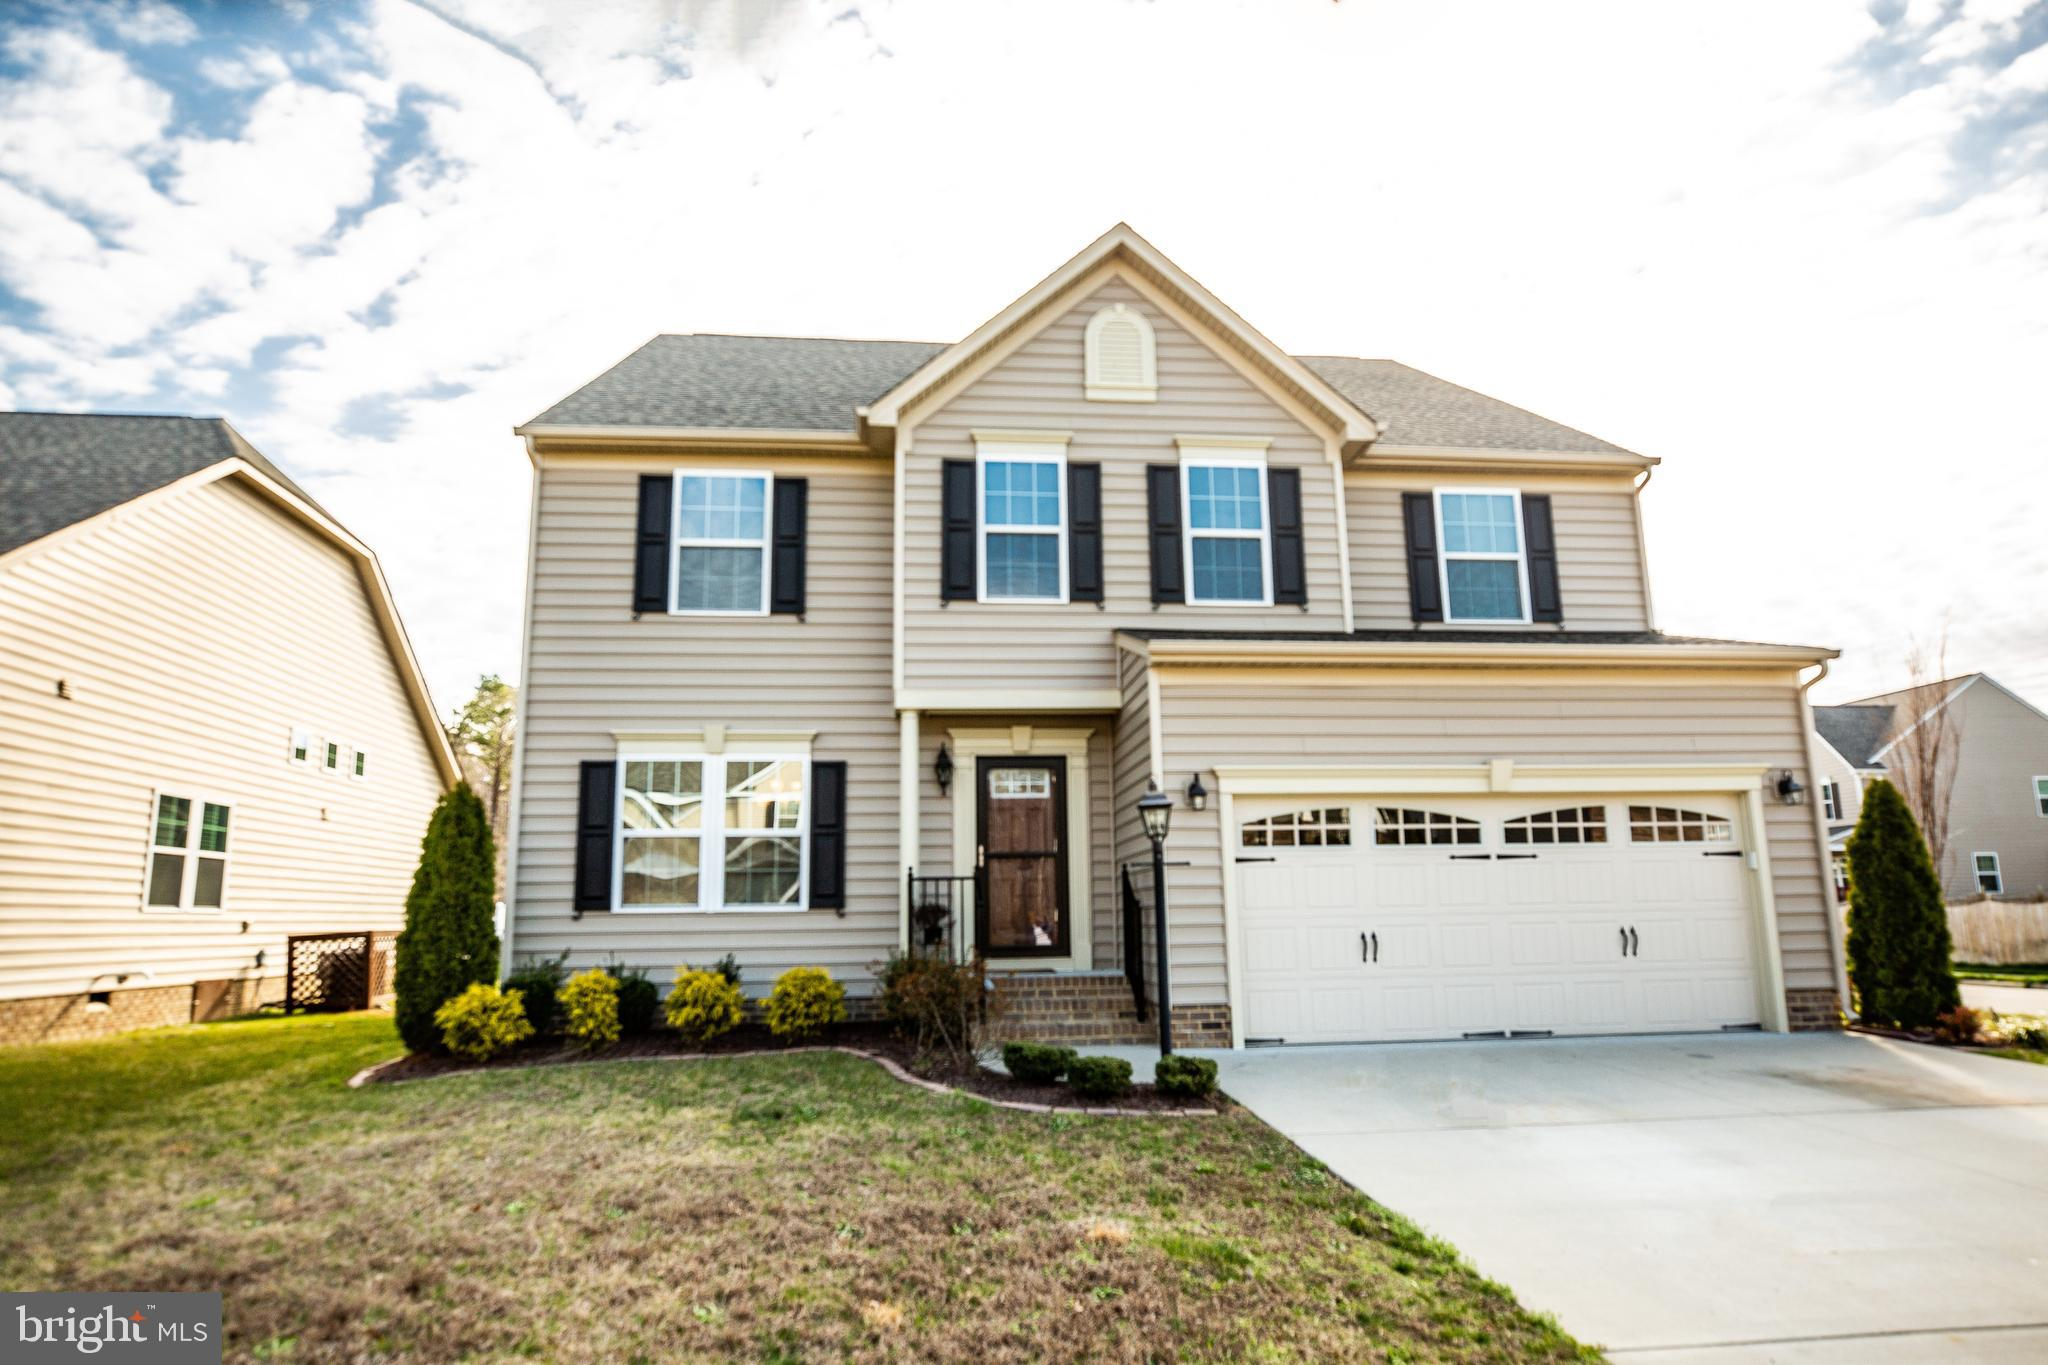 13580 PROVIDENCE RUN ROAD, ASHLAND, VA 23005